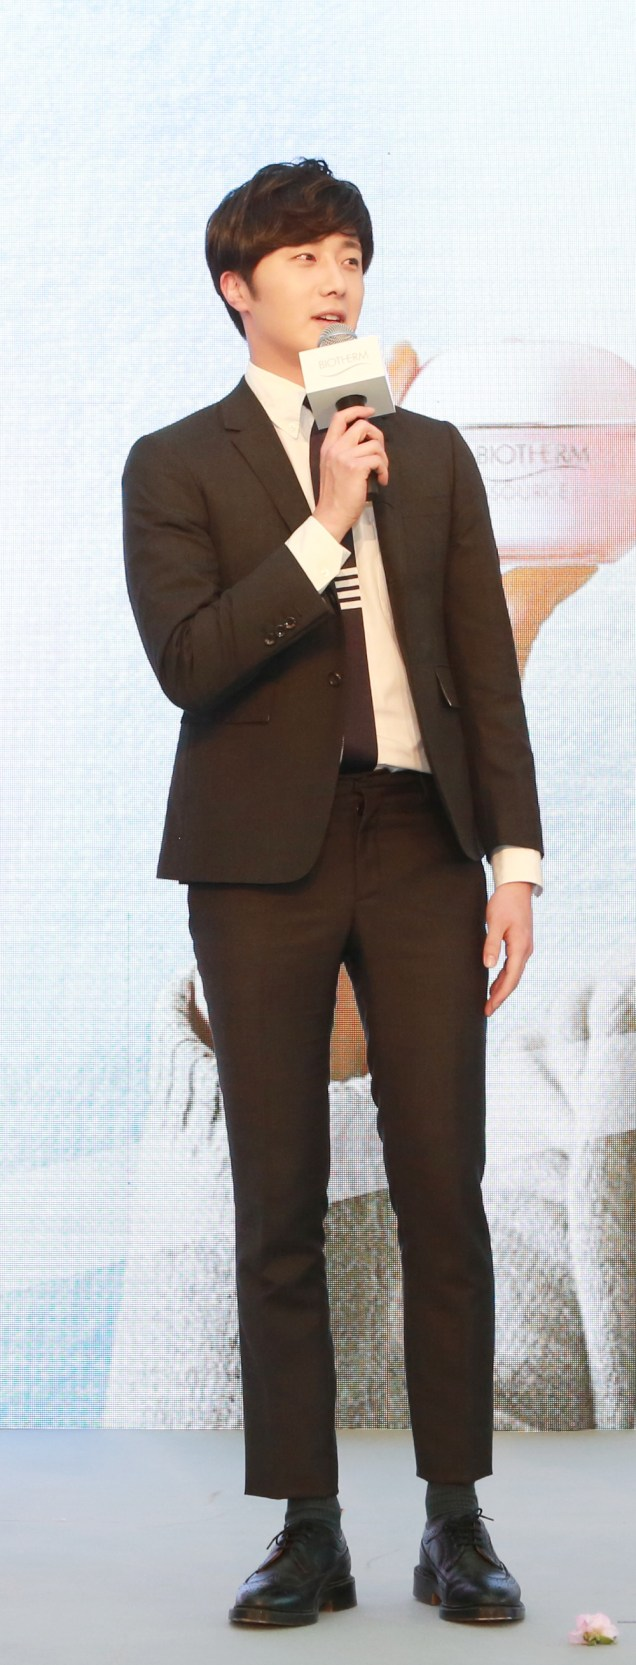 2015 3 20 Jung Il-woo at a Biotherm Event in Beijing, China. 10